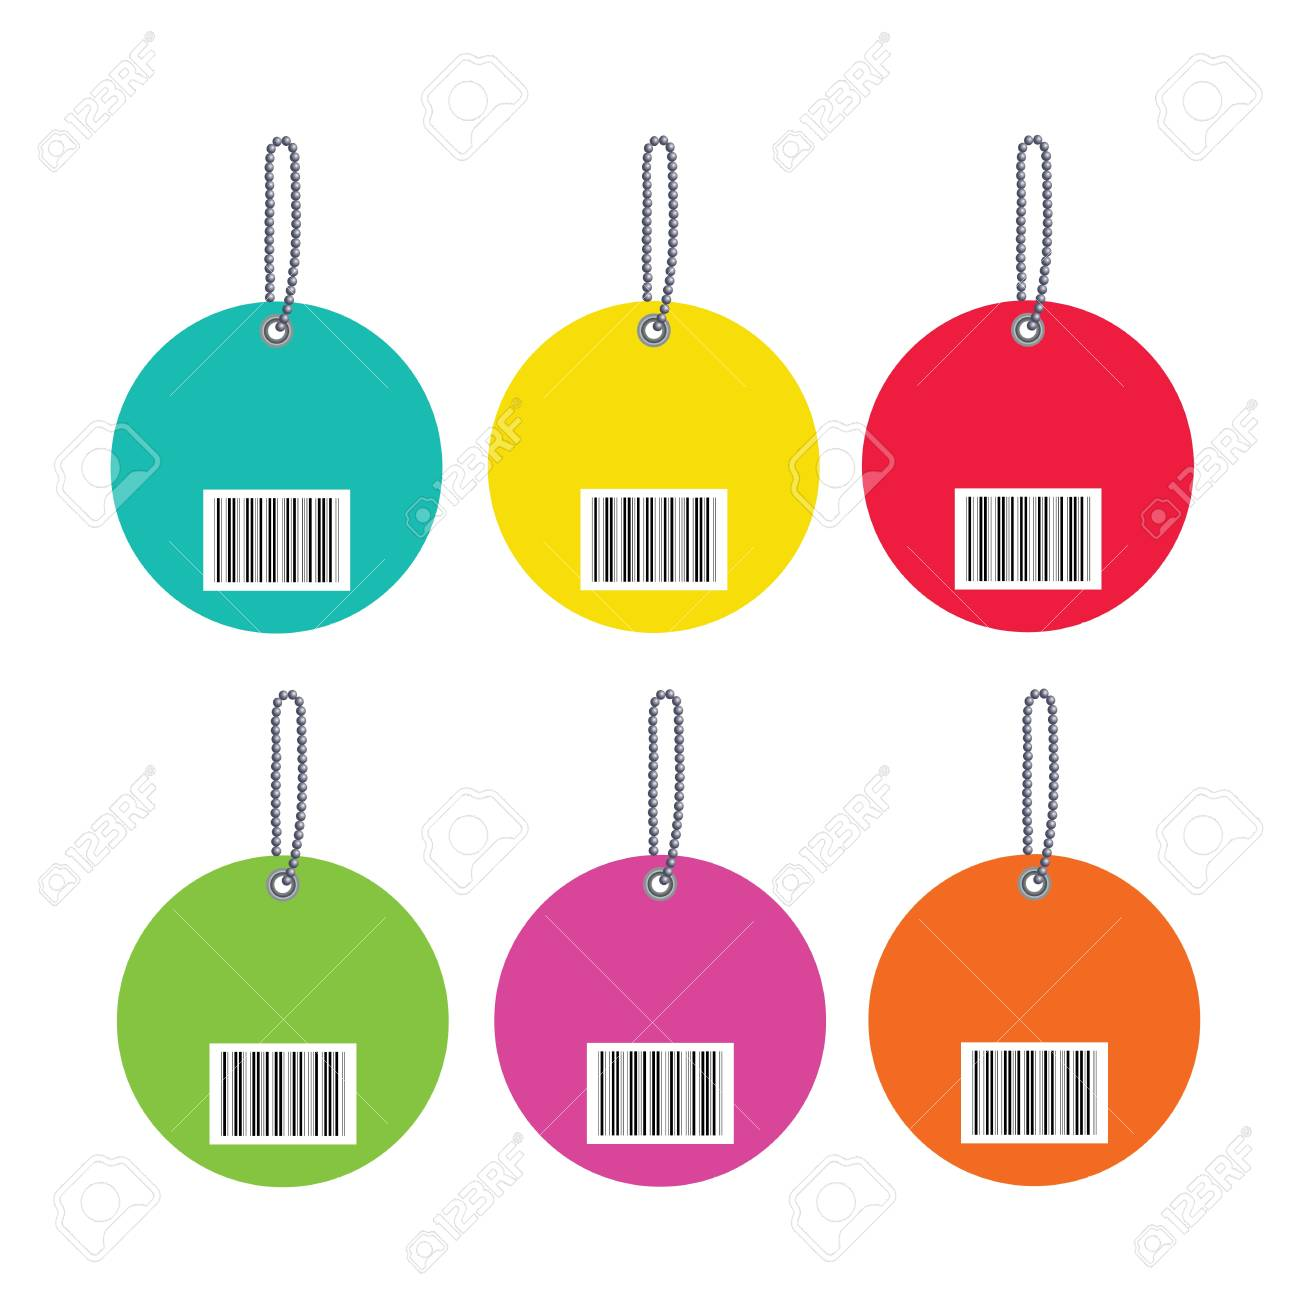 Barcodes isolated on white background Stock Vector - 19197662